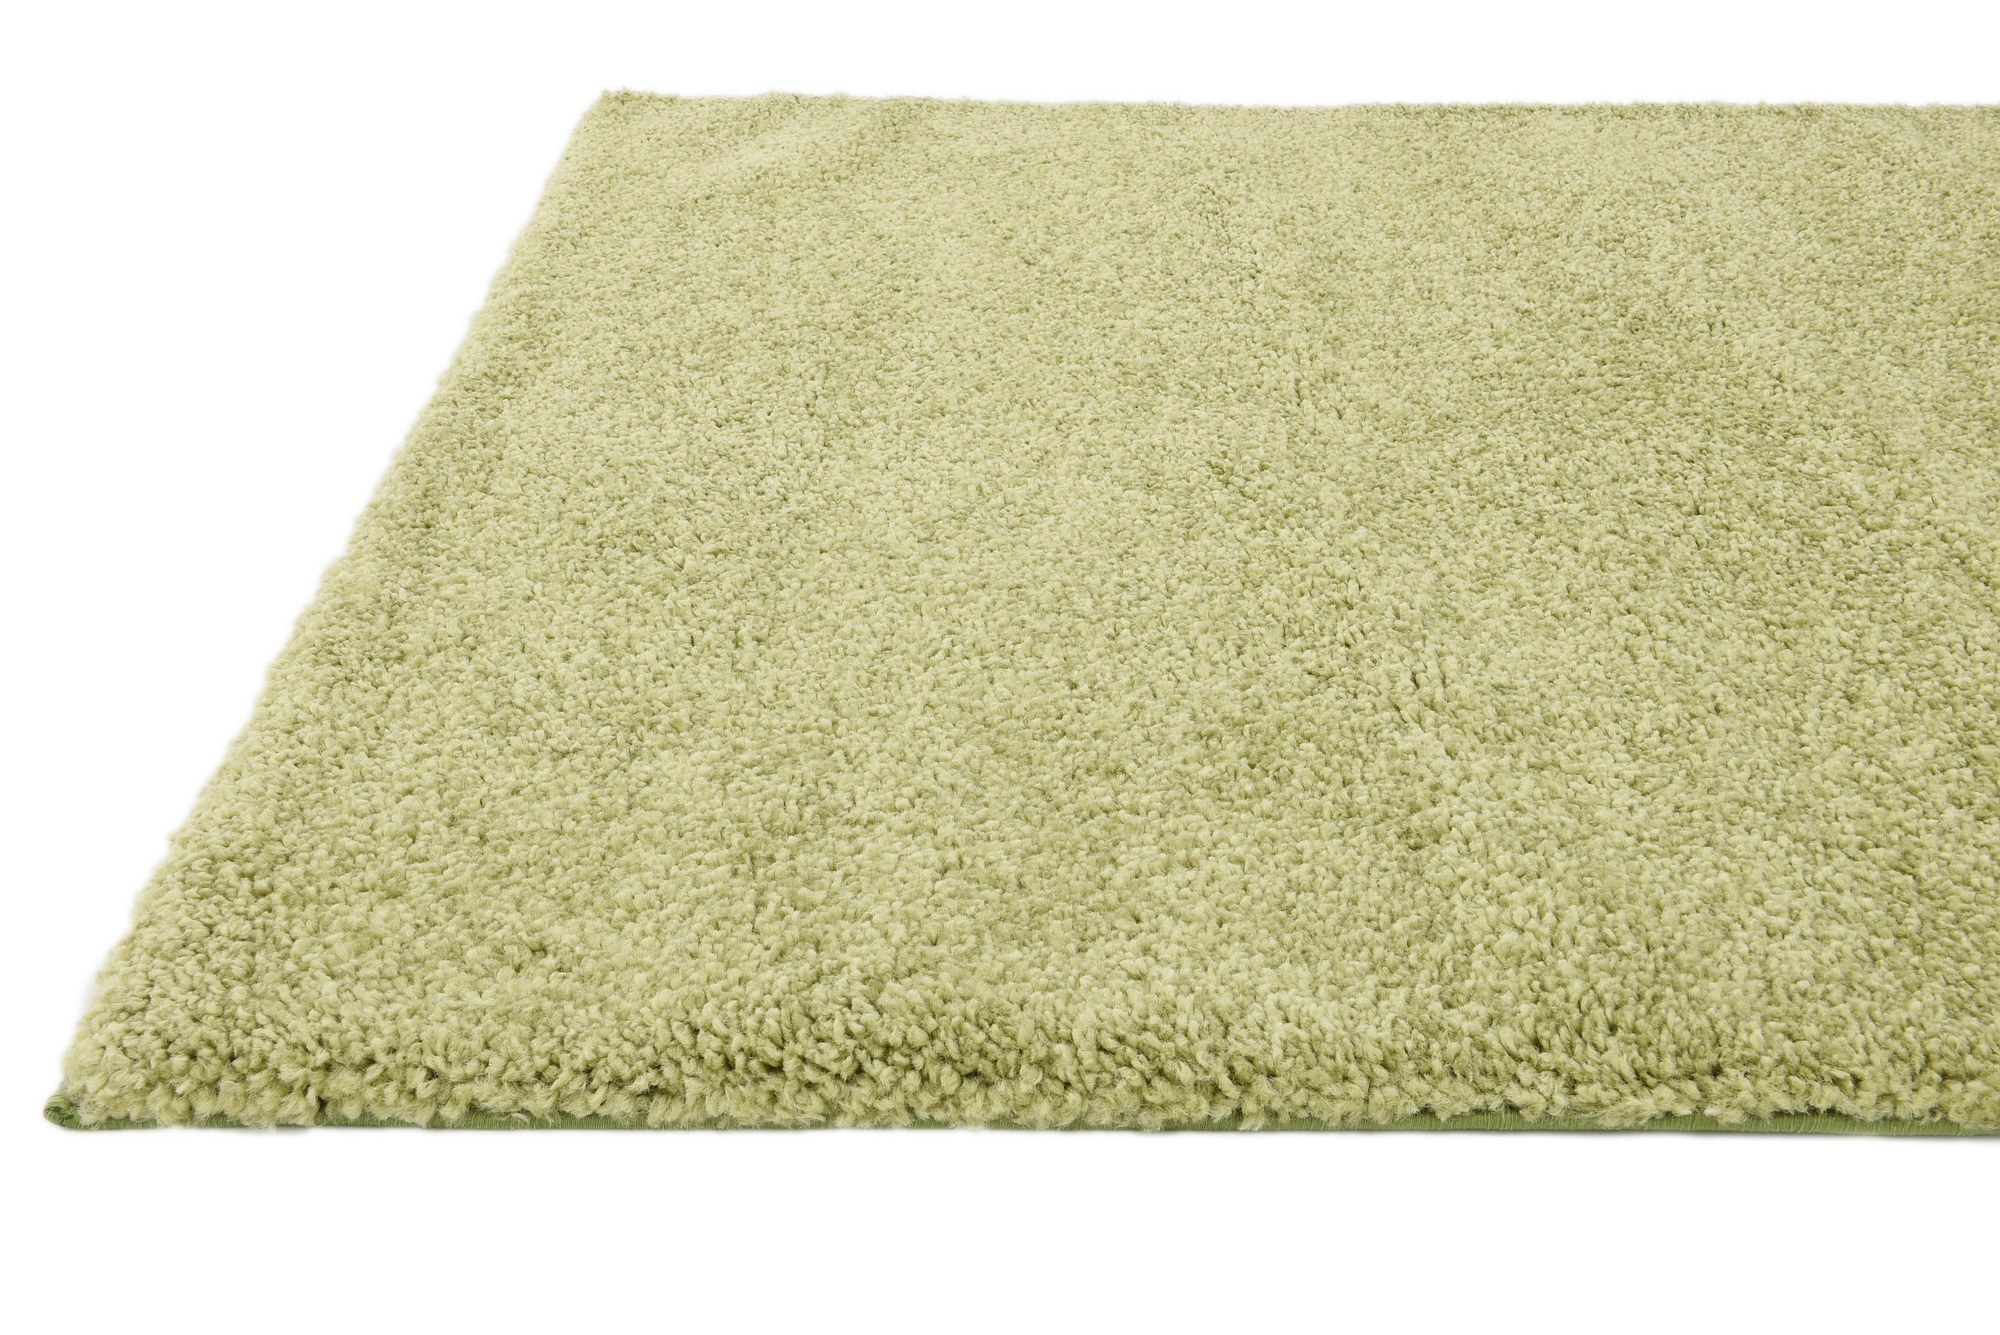 Shaggy contemporary area rug soft thick small modern plain for Thick area rugs sale